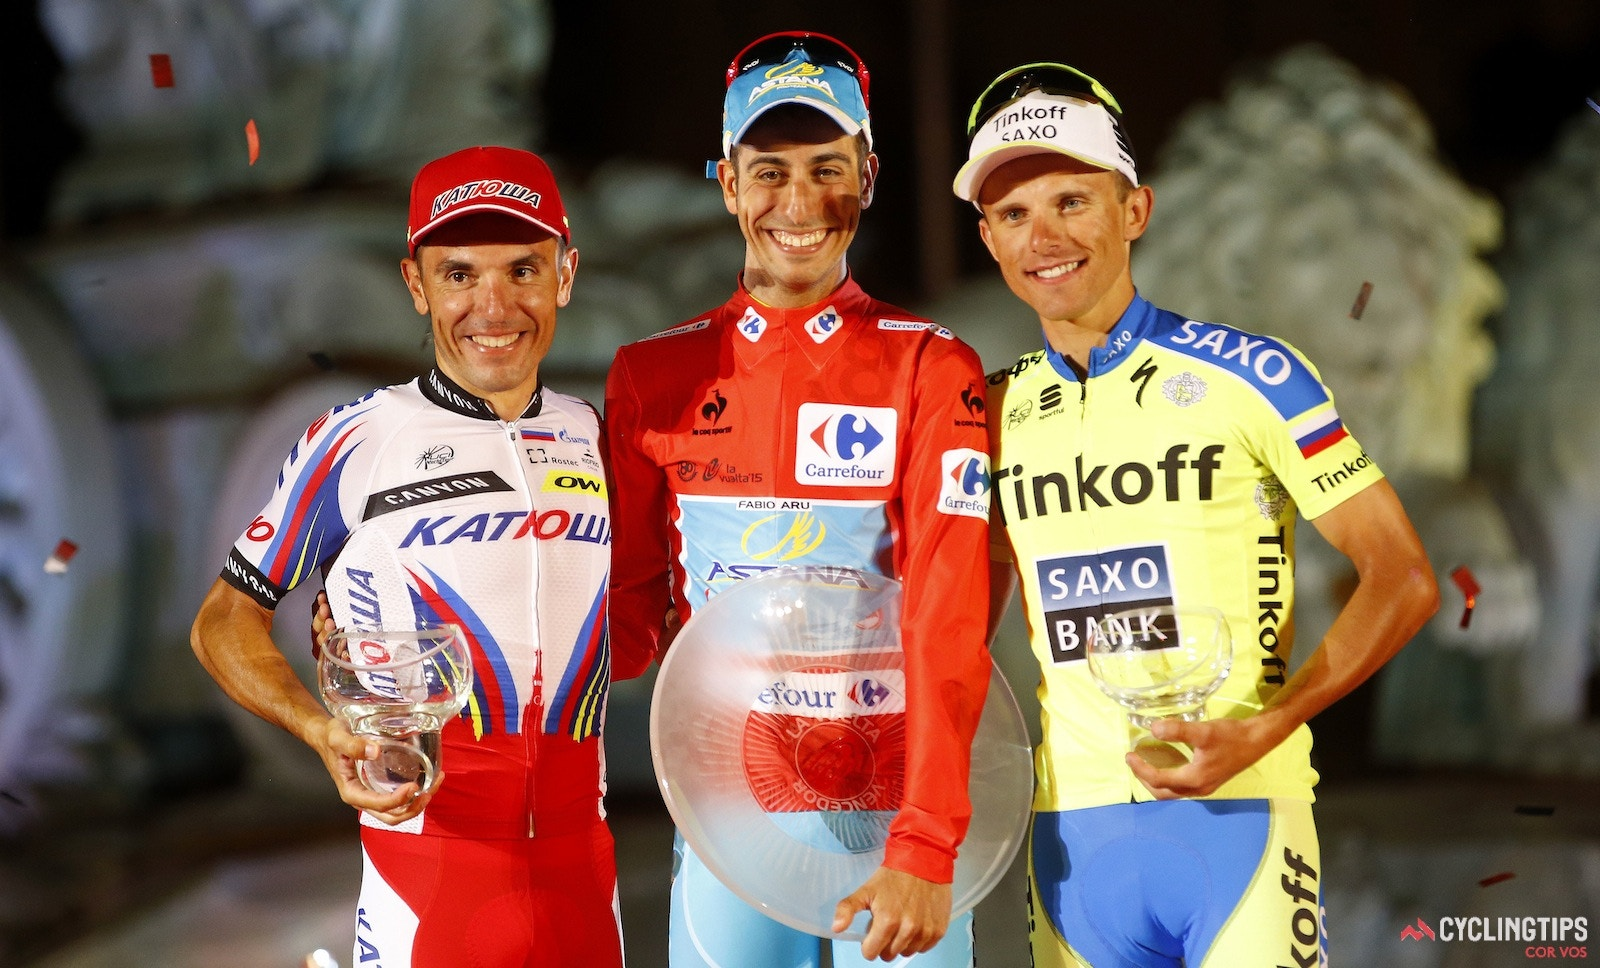 Preview: What you should know about the 2016 Vuelta a España